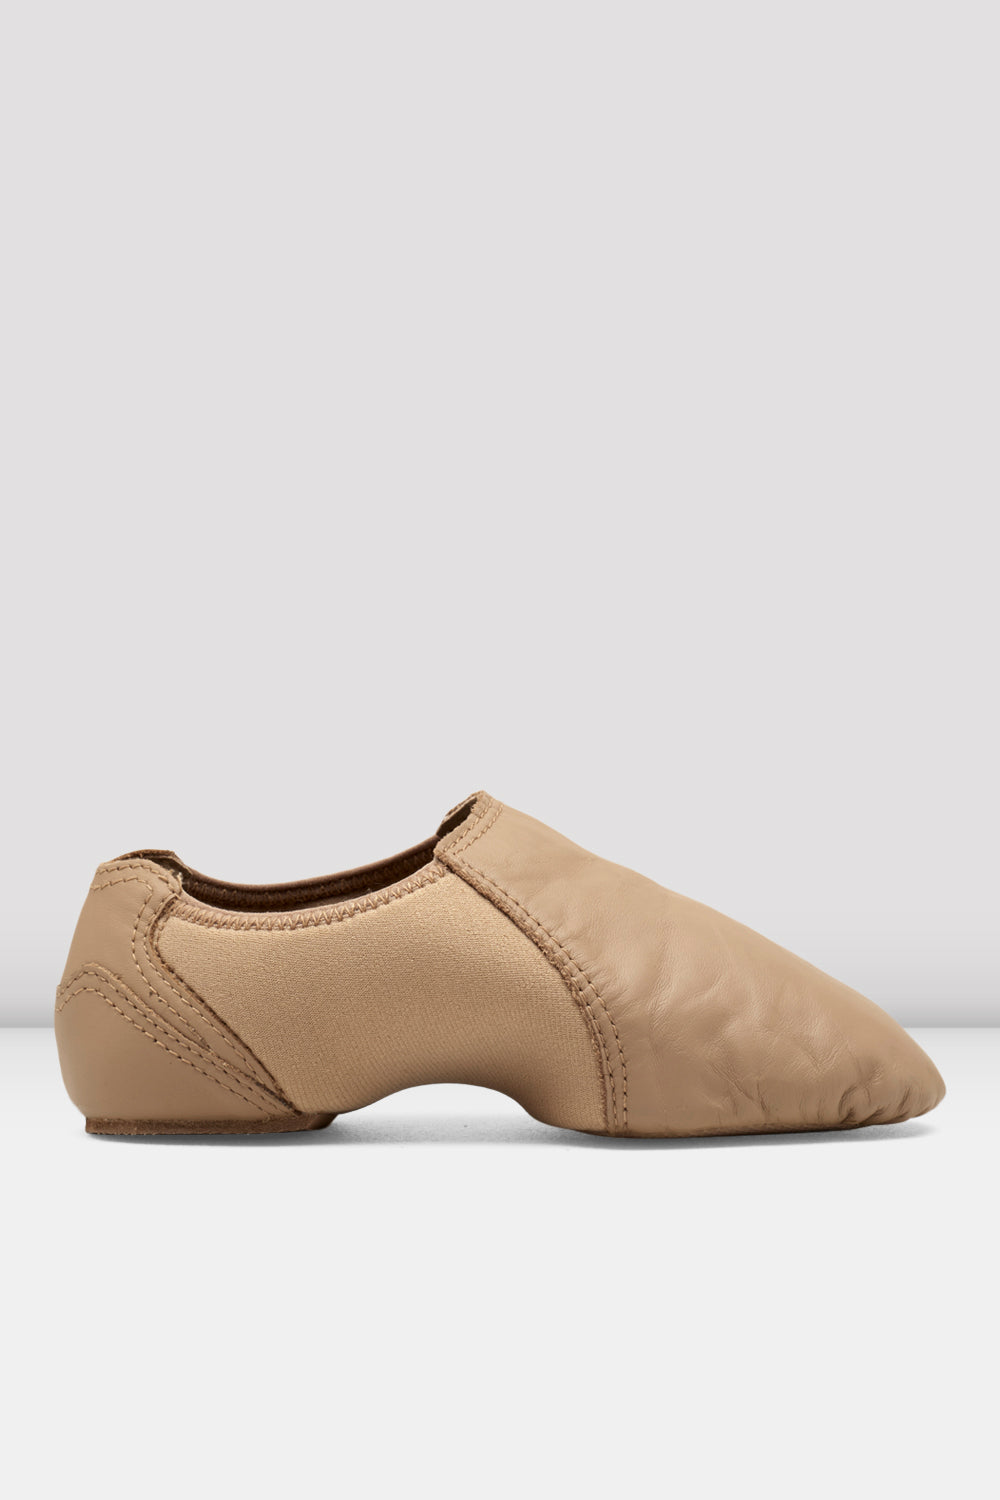 Ladies Spark Leather & Neoprene Jazz Shoes - BLOCH US